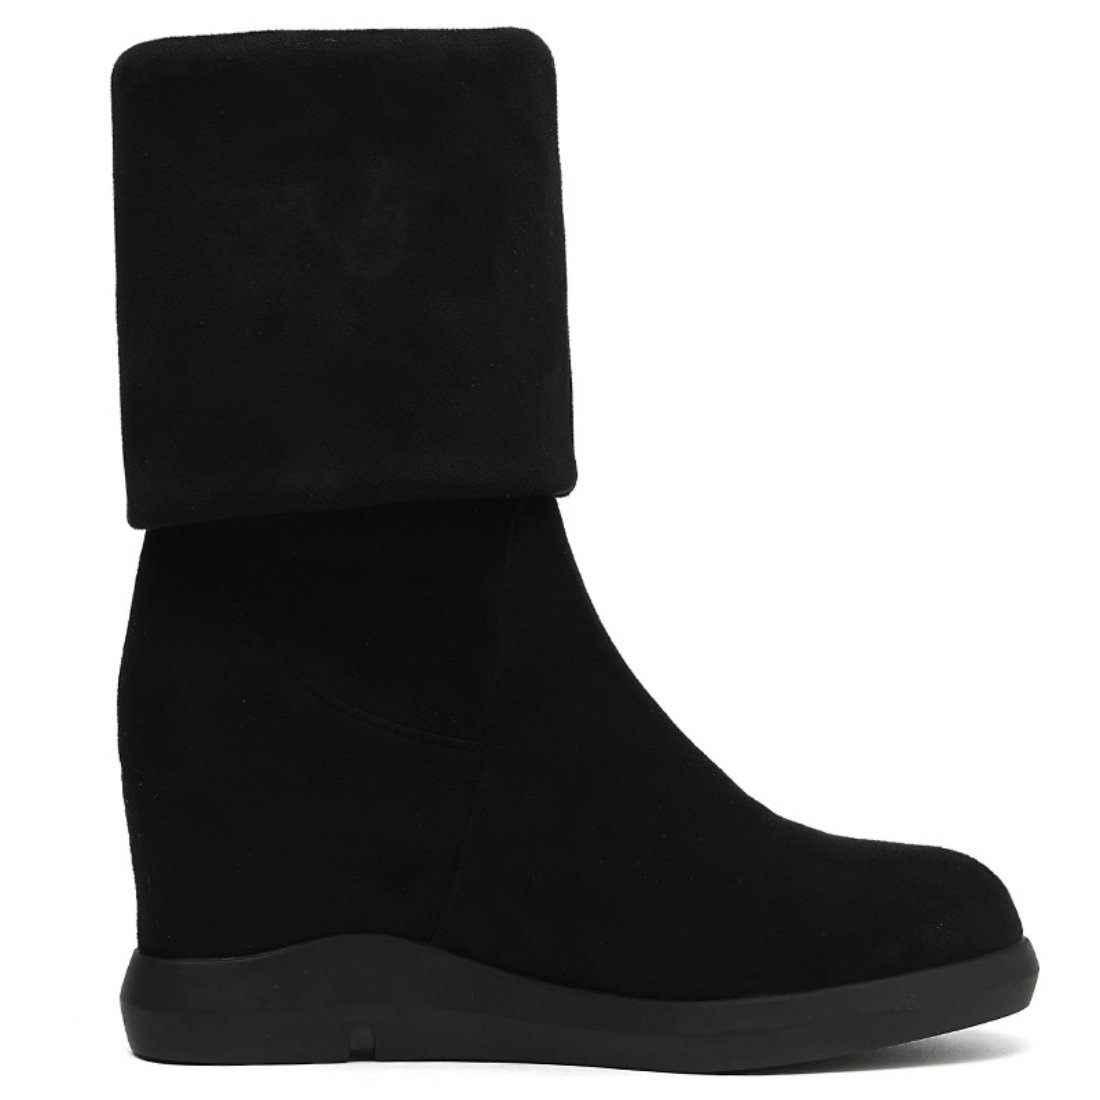 lusam feeling Womens Winter Faux Fur Lining Cozy Warm Water Resistant Lightweight Snow Boots